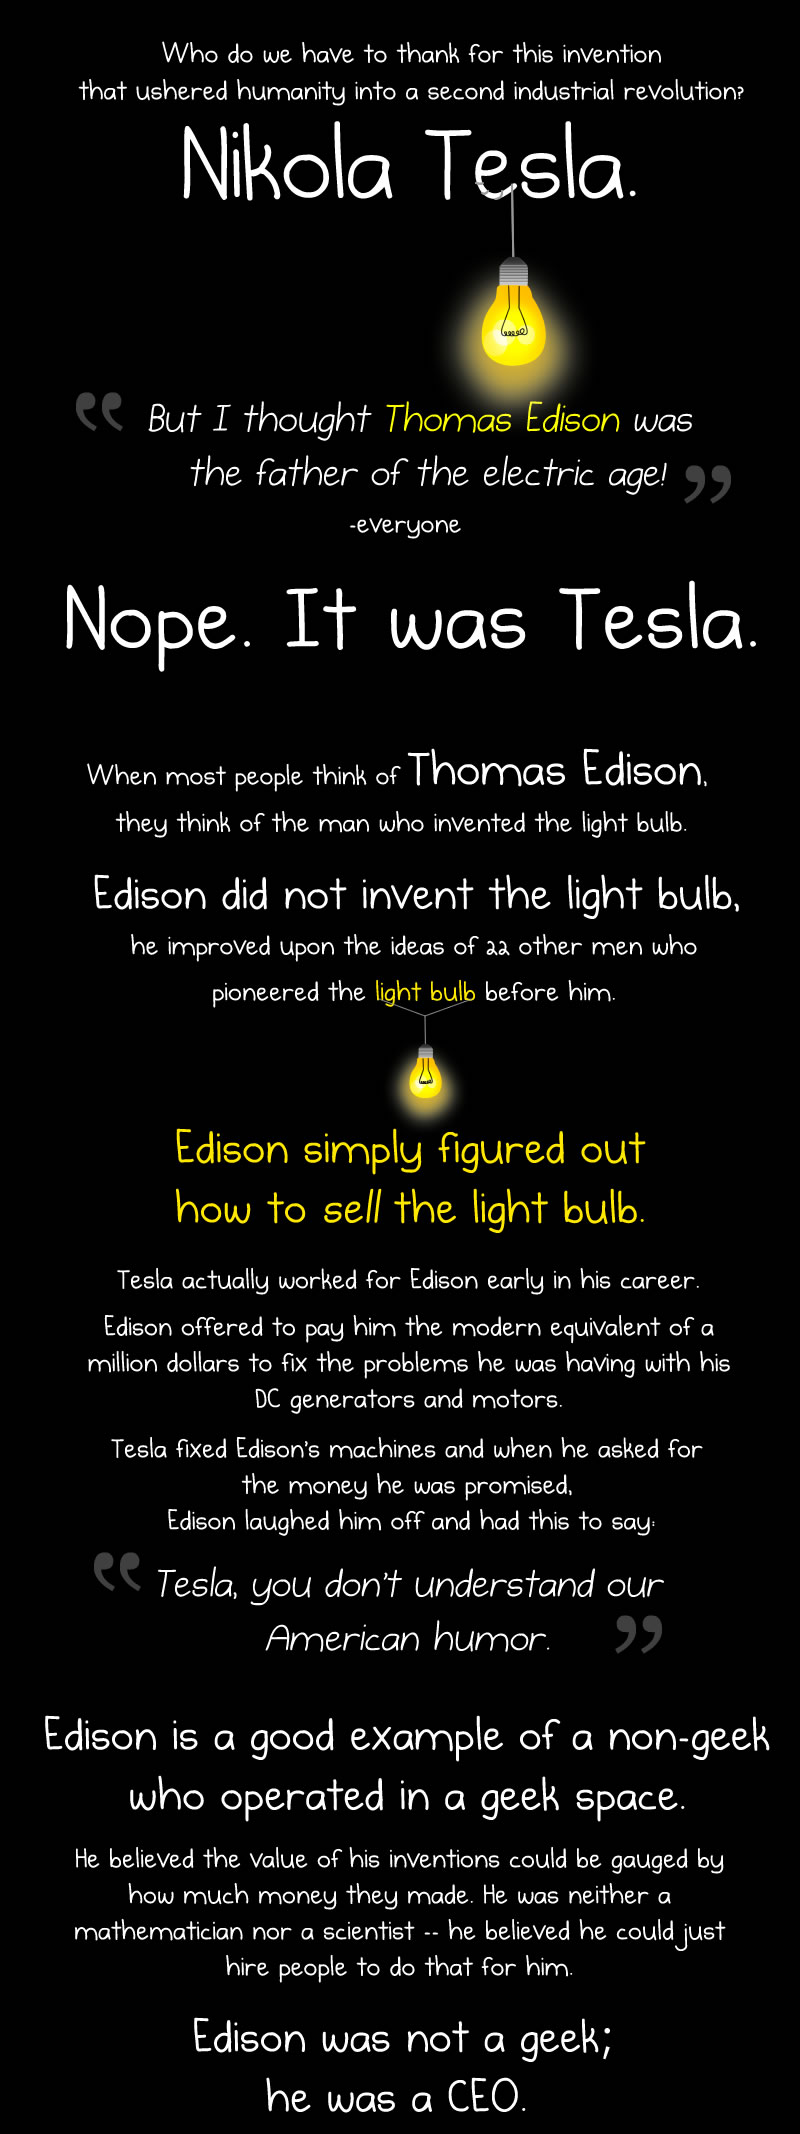 http://s3.amazonaws.com/theoatmeal-img/comics/tesla/2.jpg